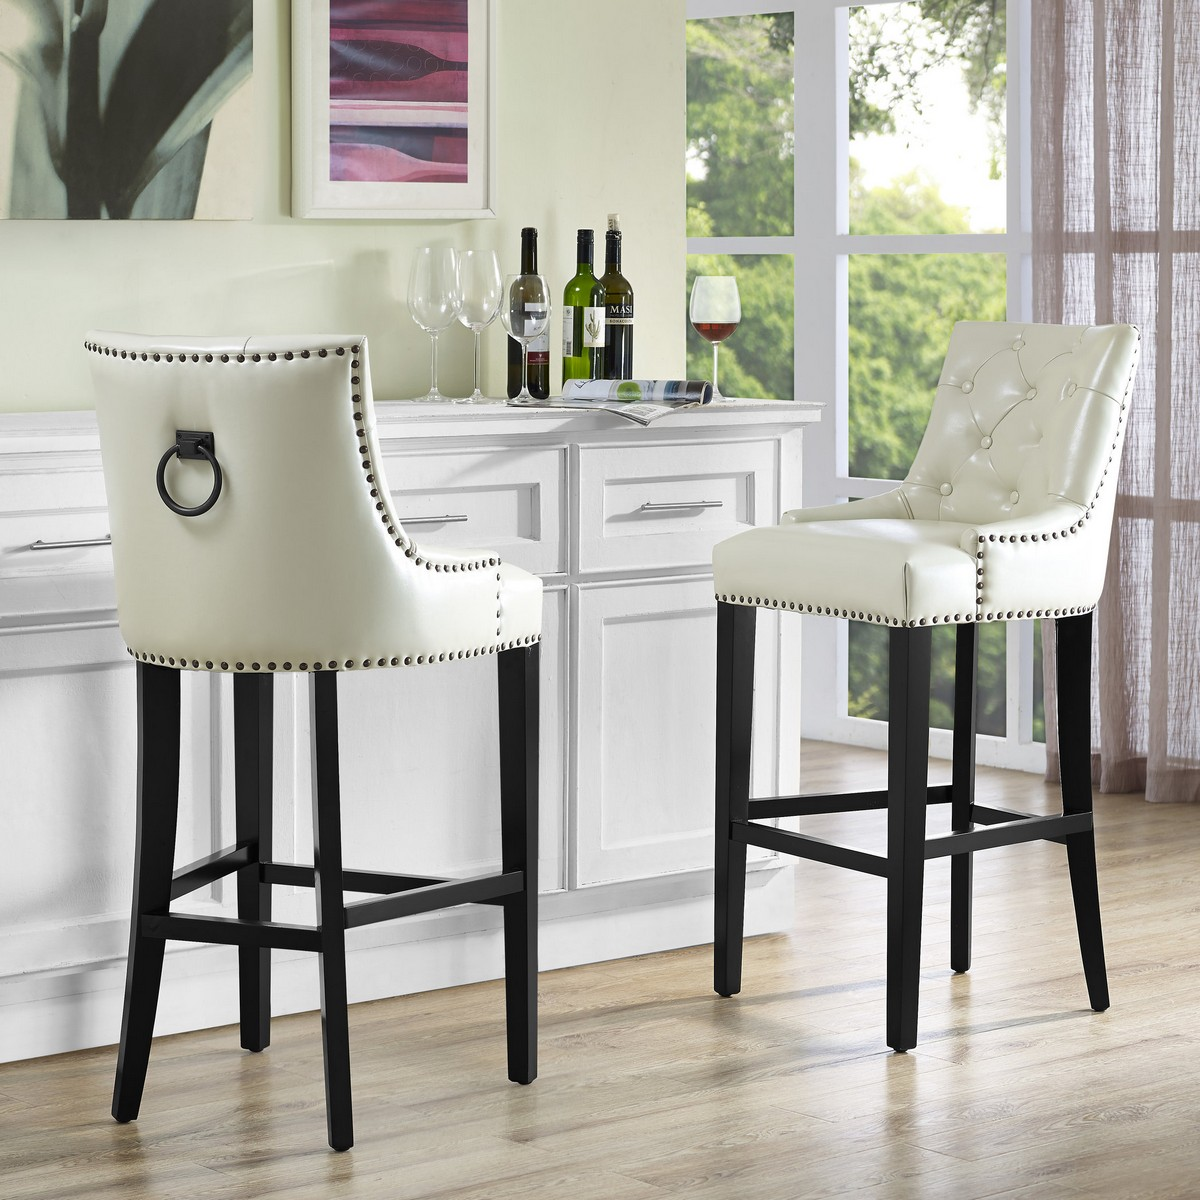 Tov Furniture Uptown Cream Leather Counter Stool Bs17 At